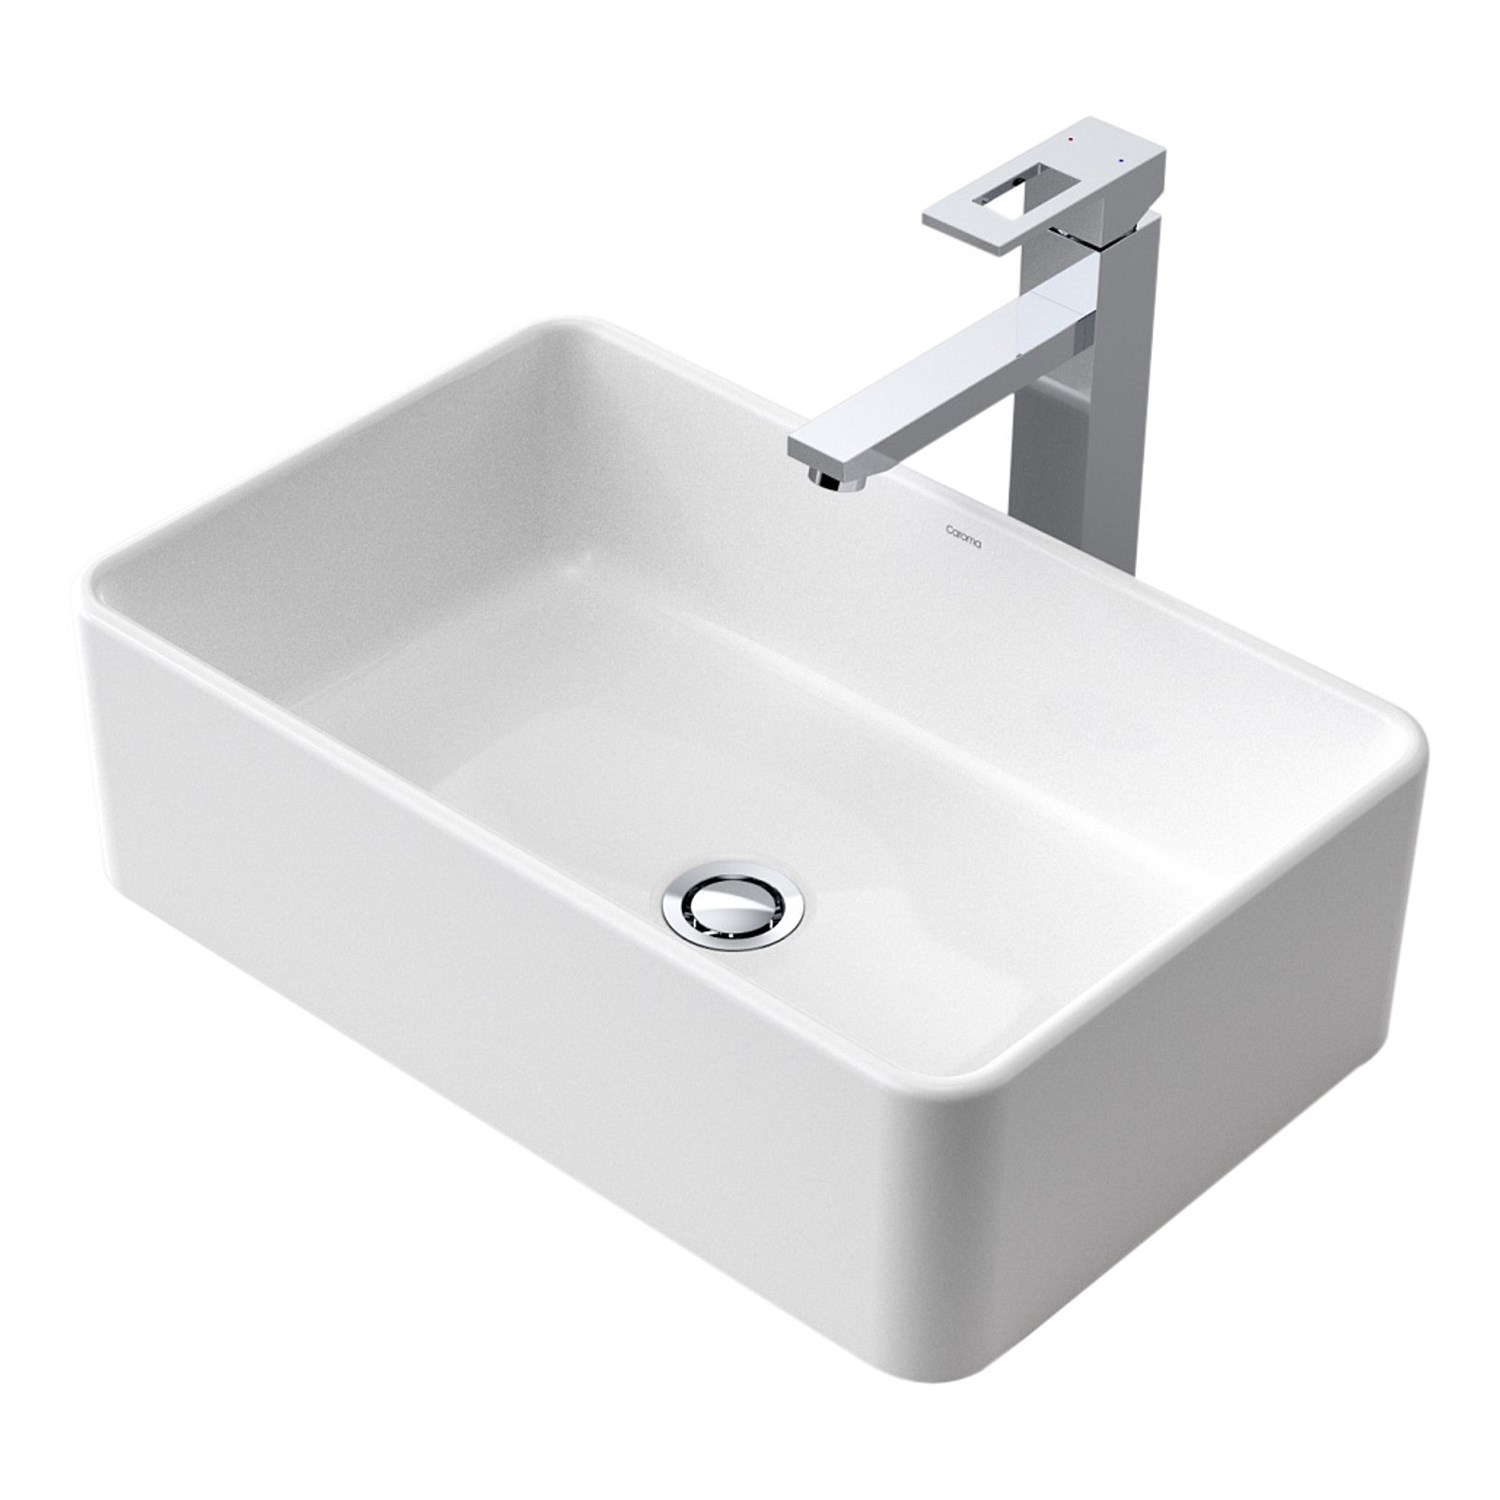 Basins Plumbing World Caroma Cube 500mm Above Counter Basin